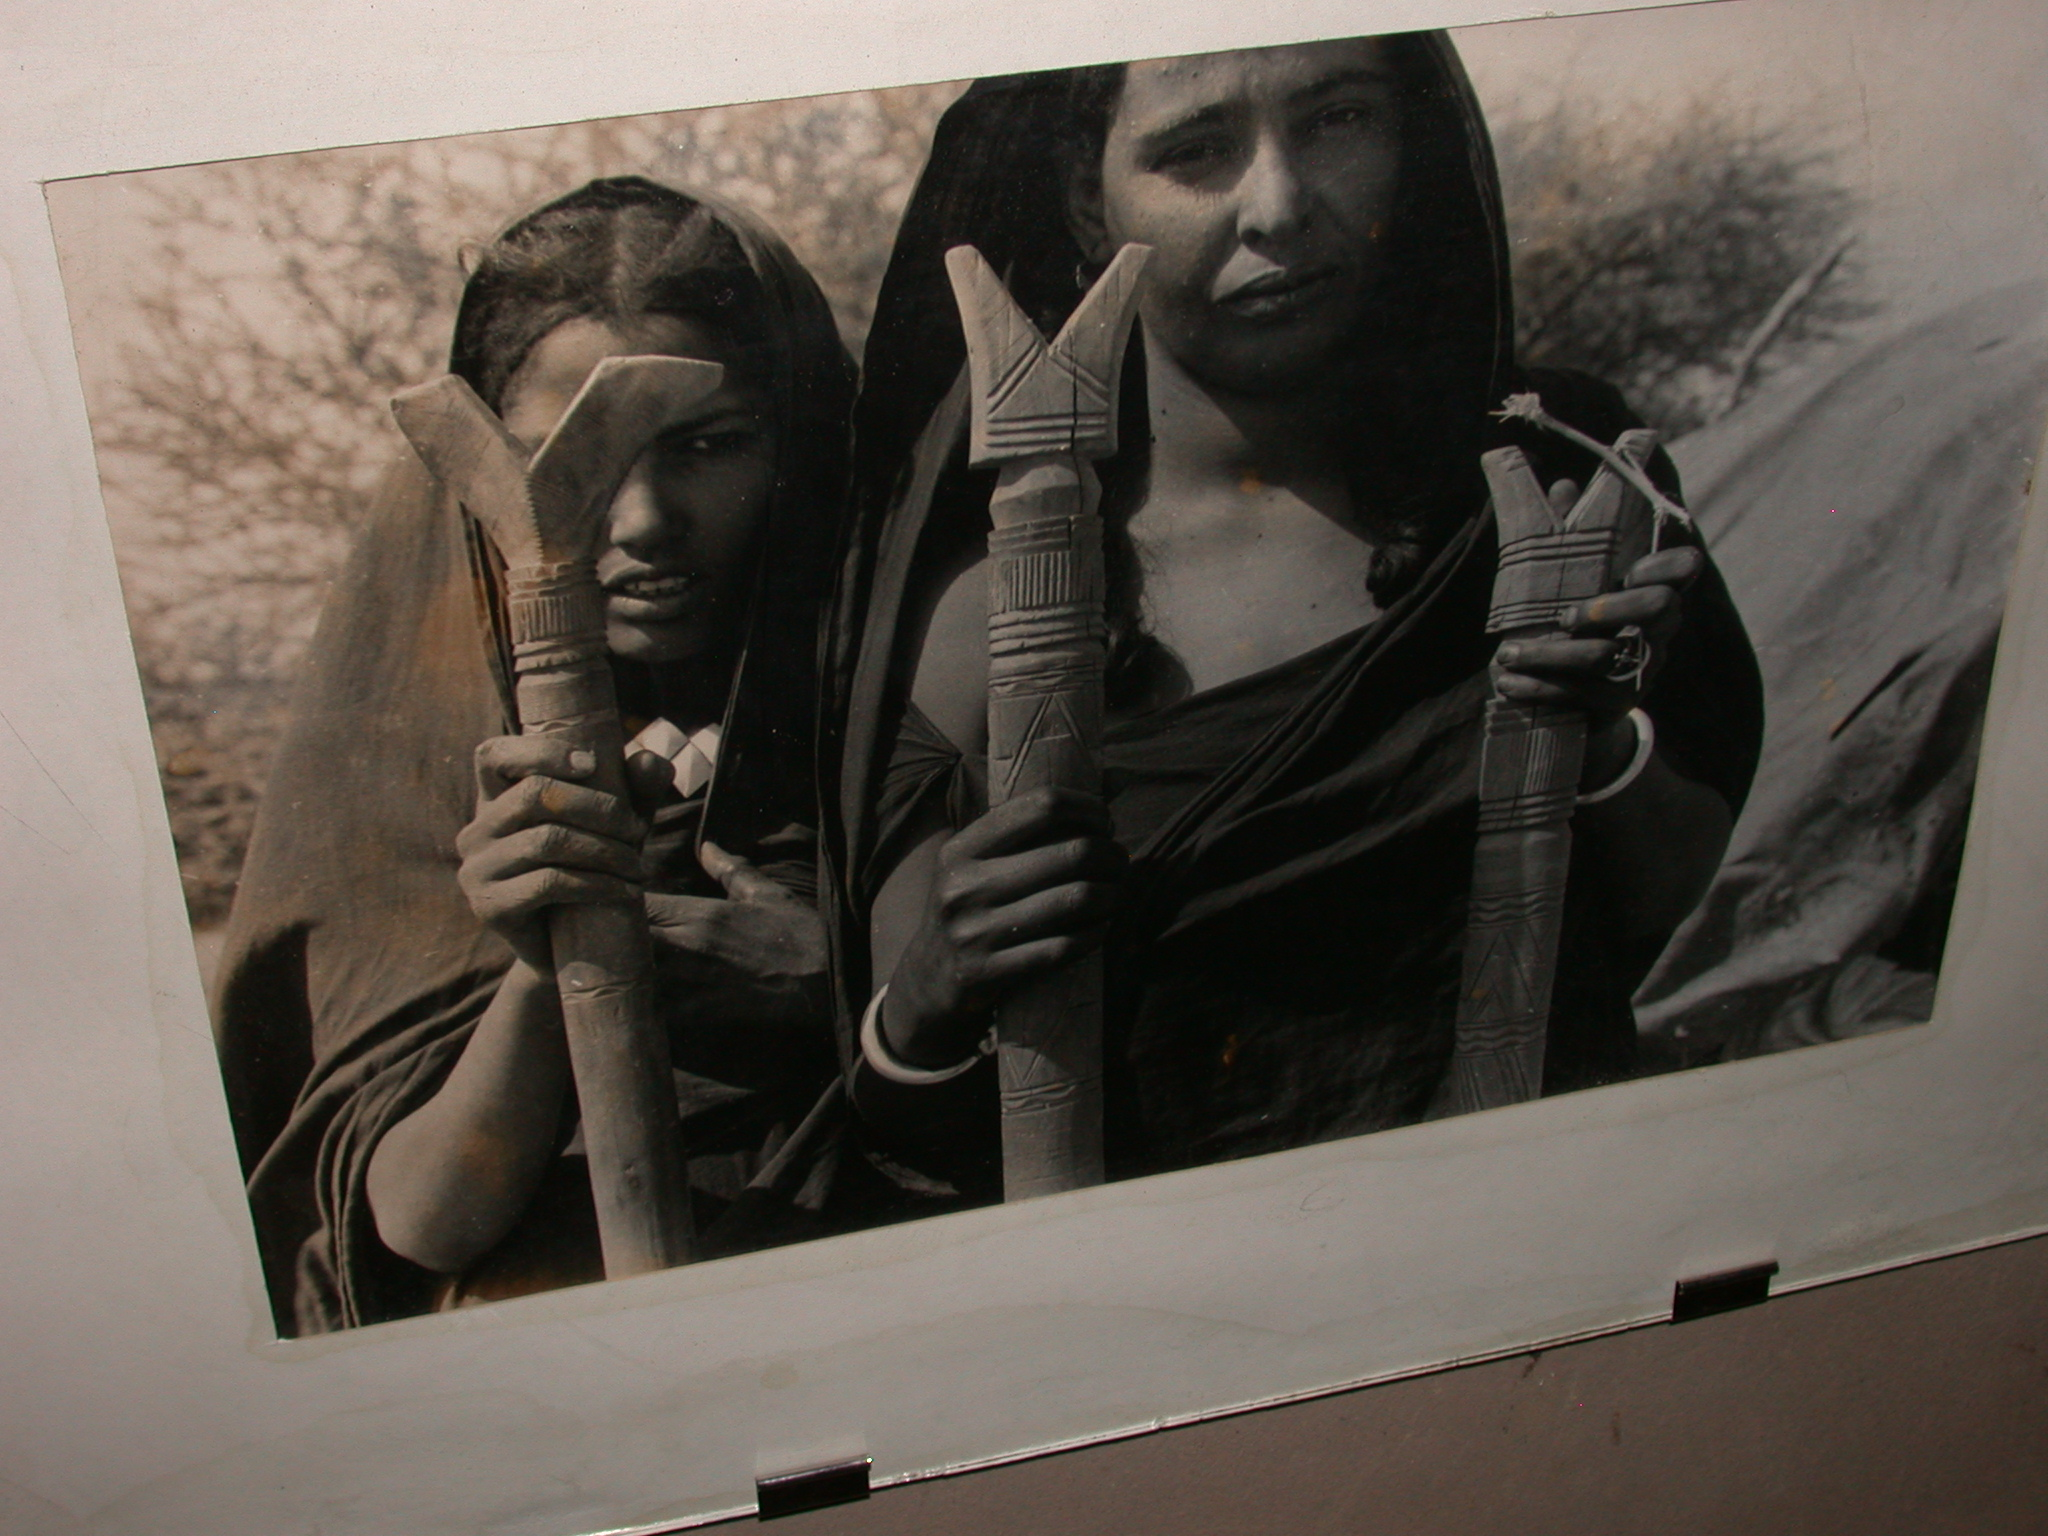 Photo of Women Holding What Appear to Be Staffs, Timbuktu Ethnological Museum, Timbuktu, Mali